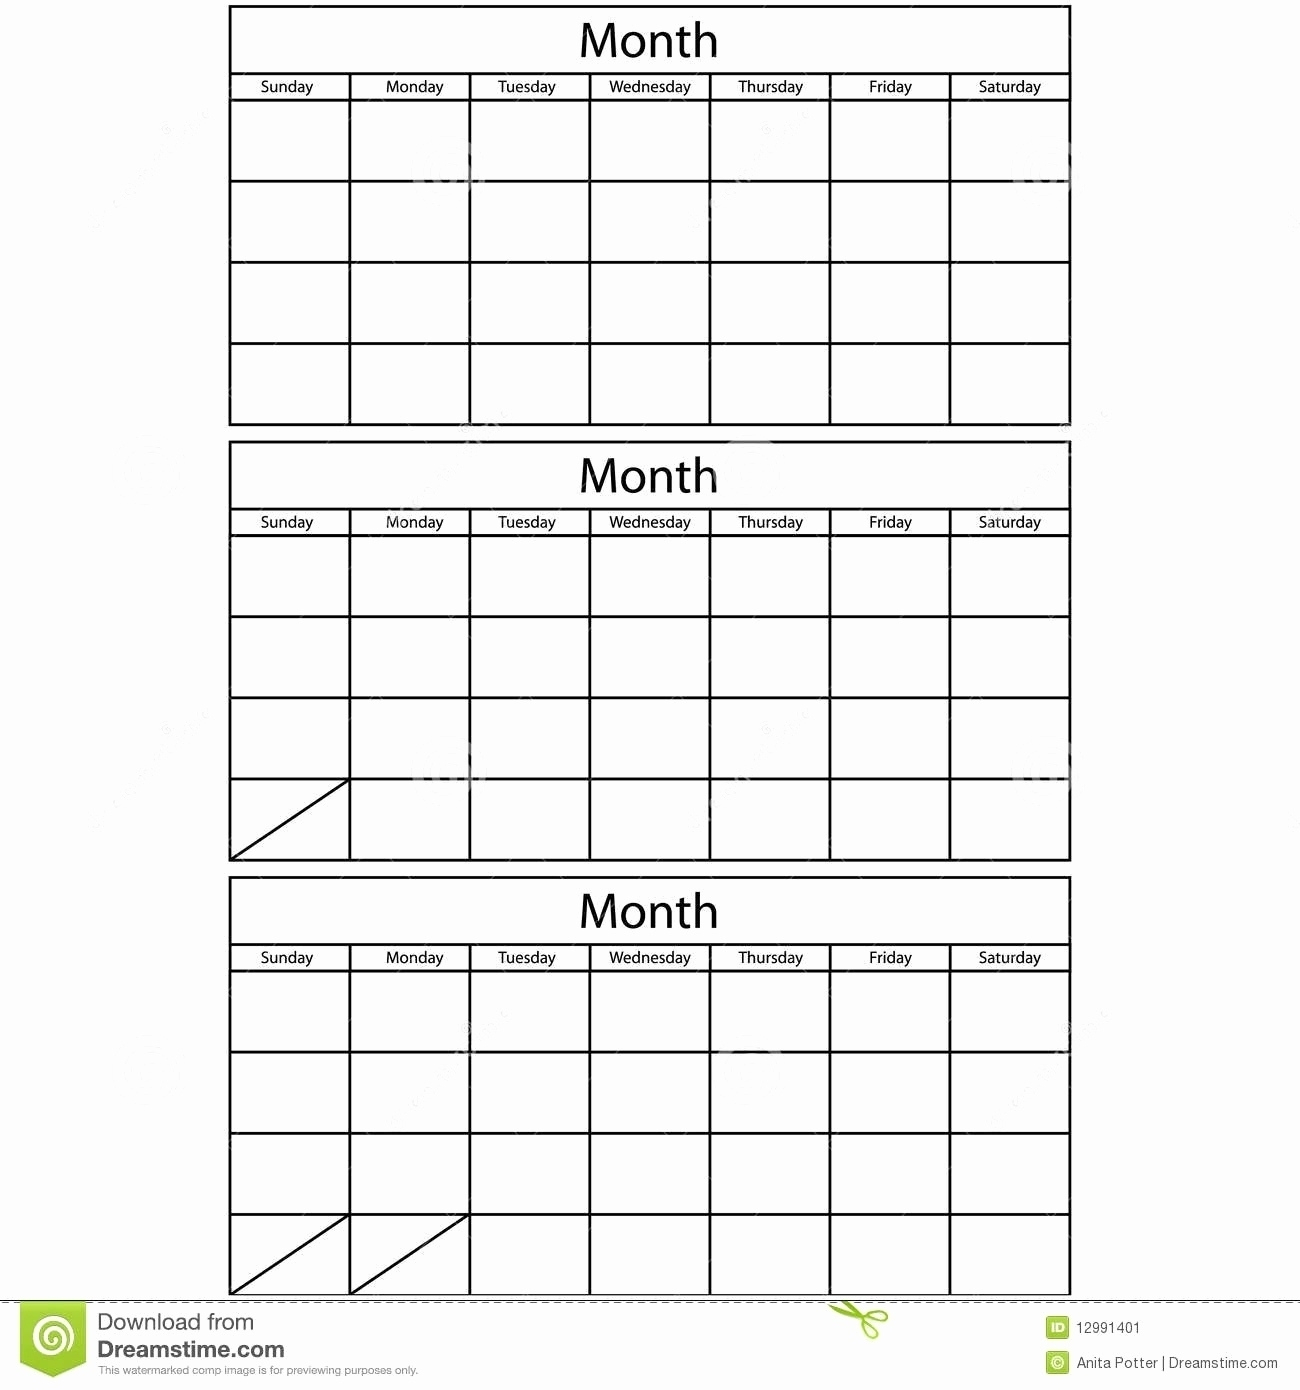 3 Month Planning Calendar Printable - Calendar Inspiration